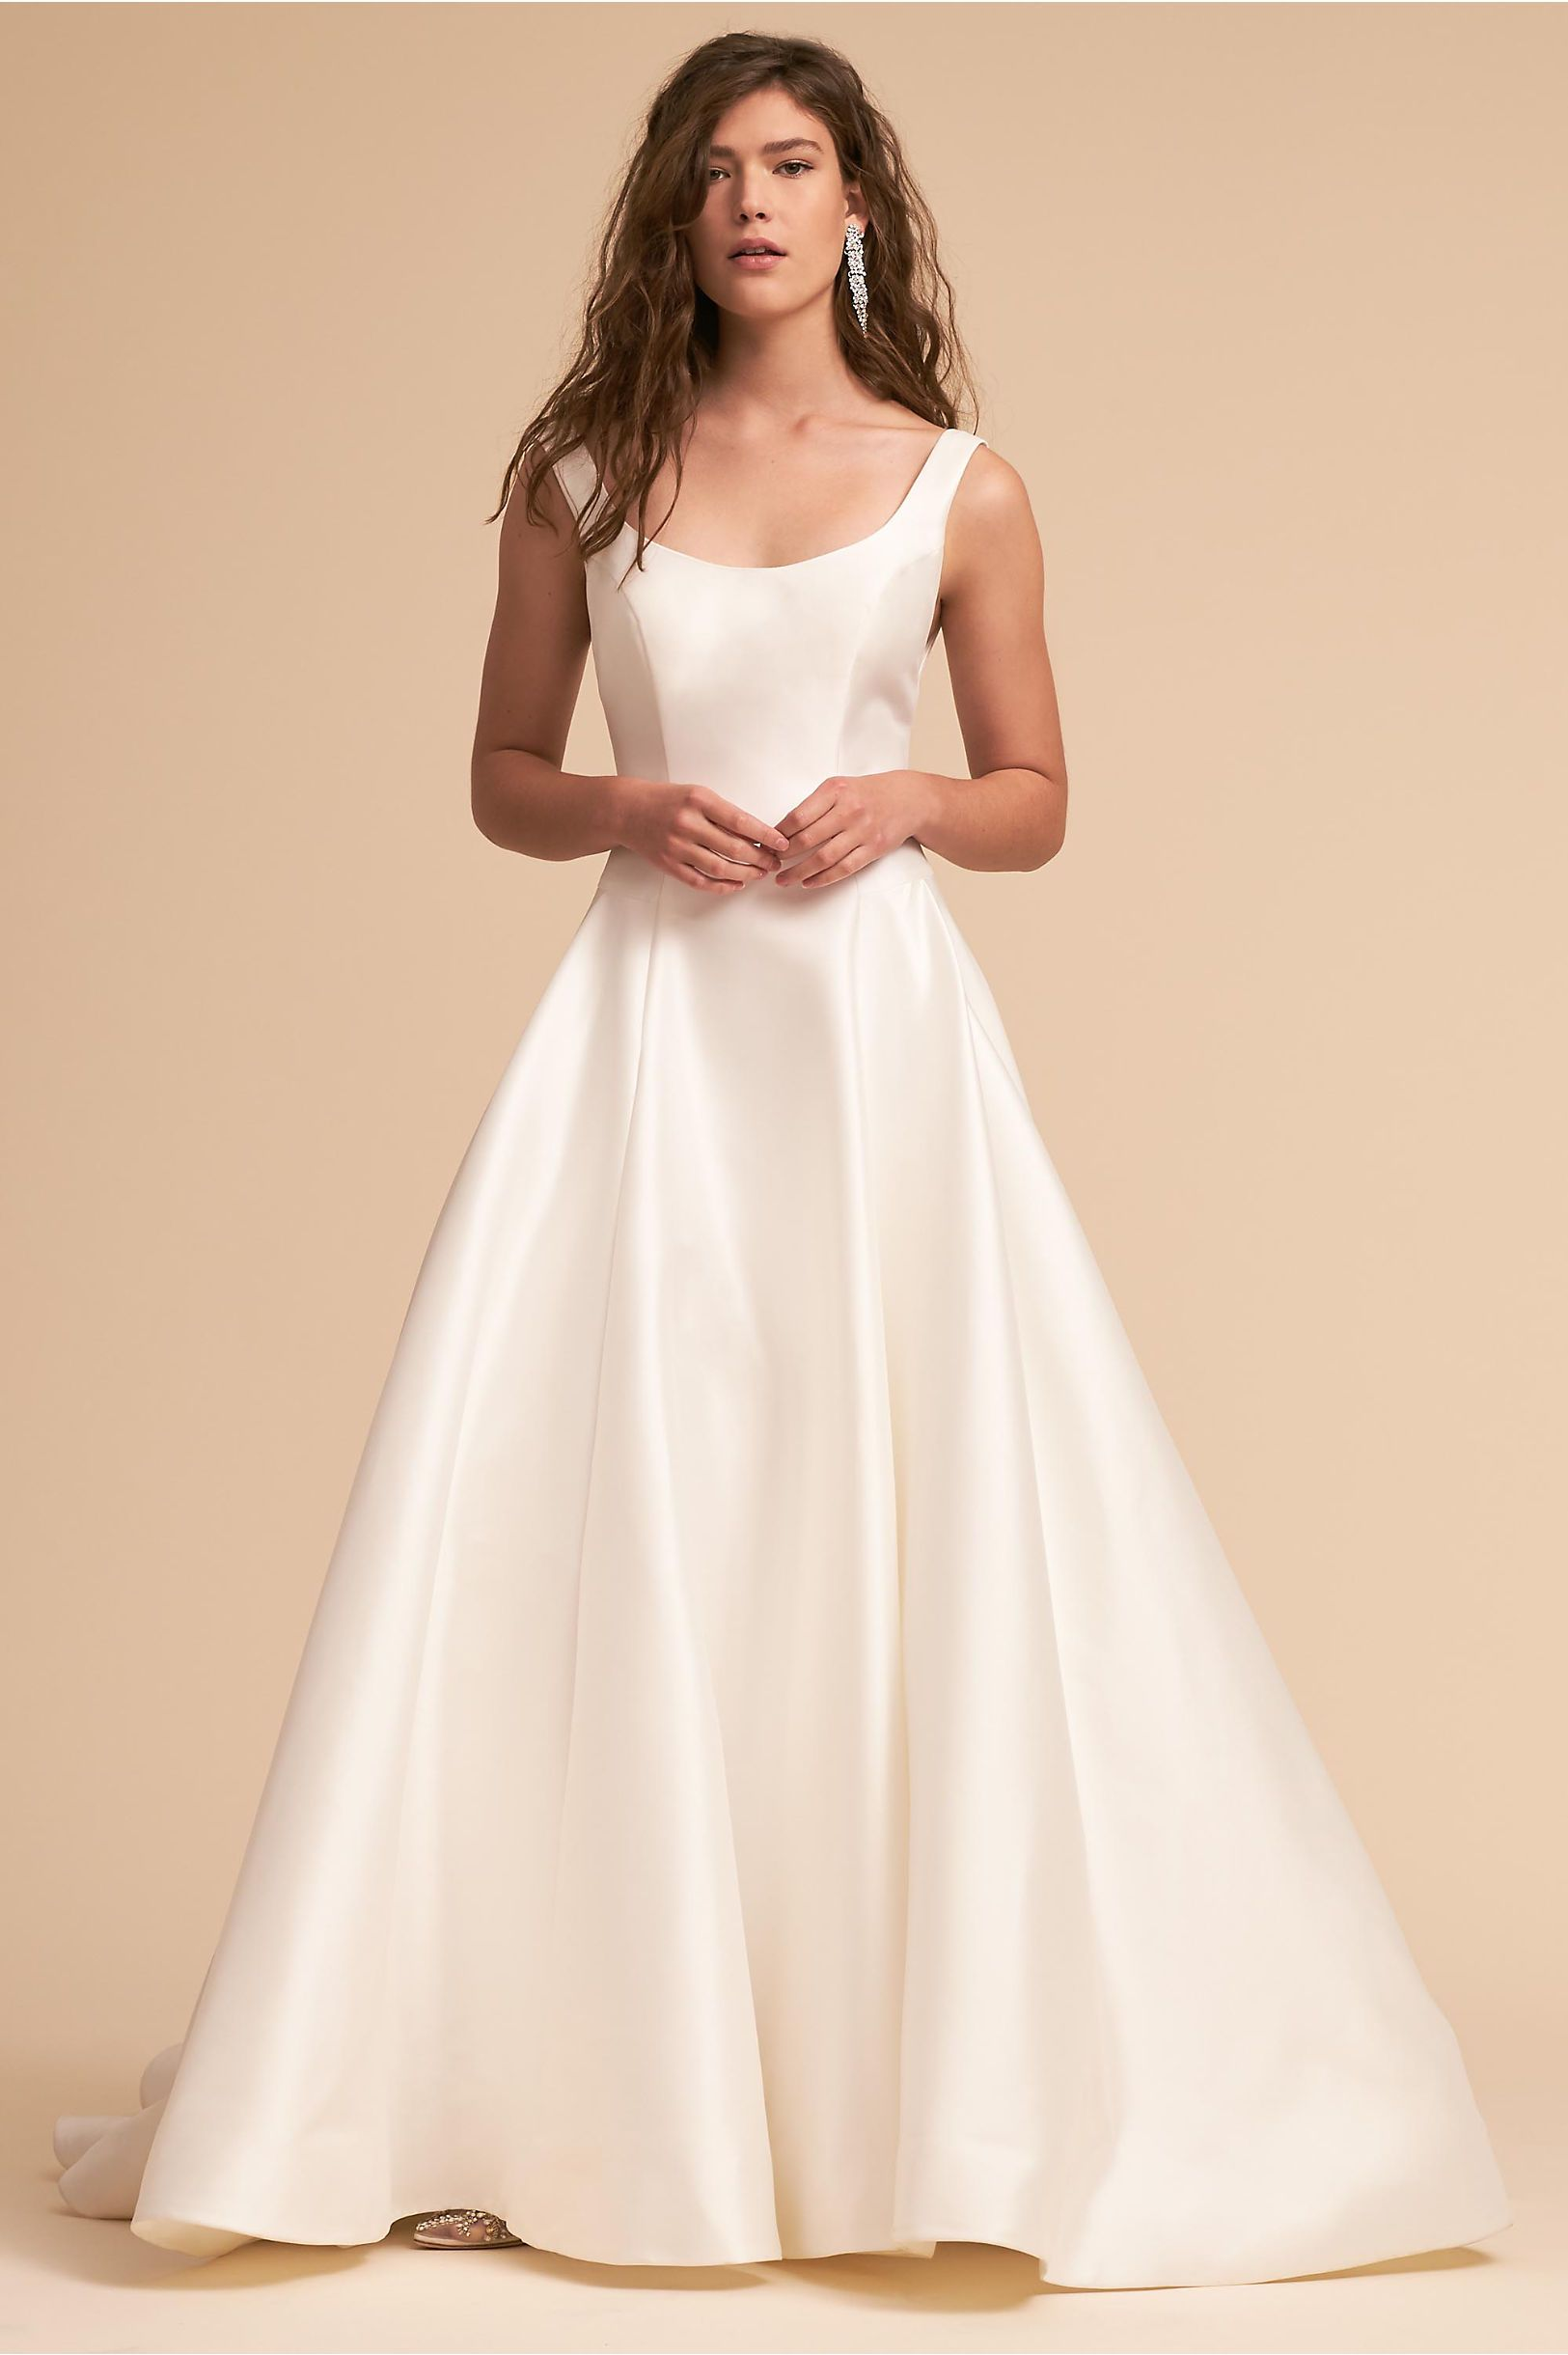 Simple dress for civil wedding  BHLDN Bishop Gown Ivory in Bride  BHLDN  Wallace Wedding